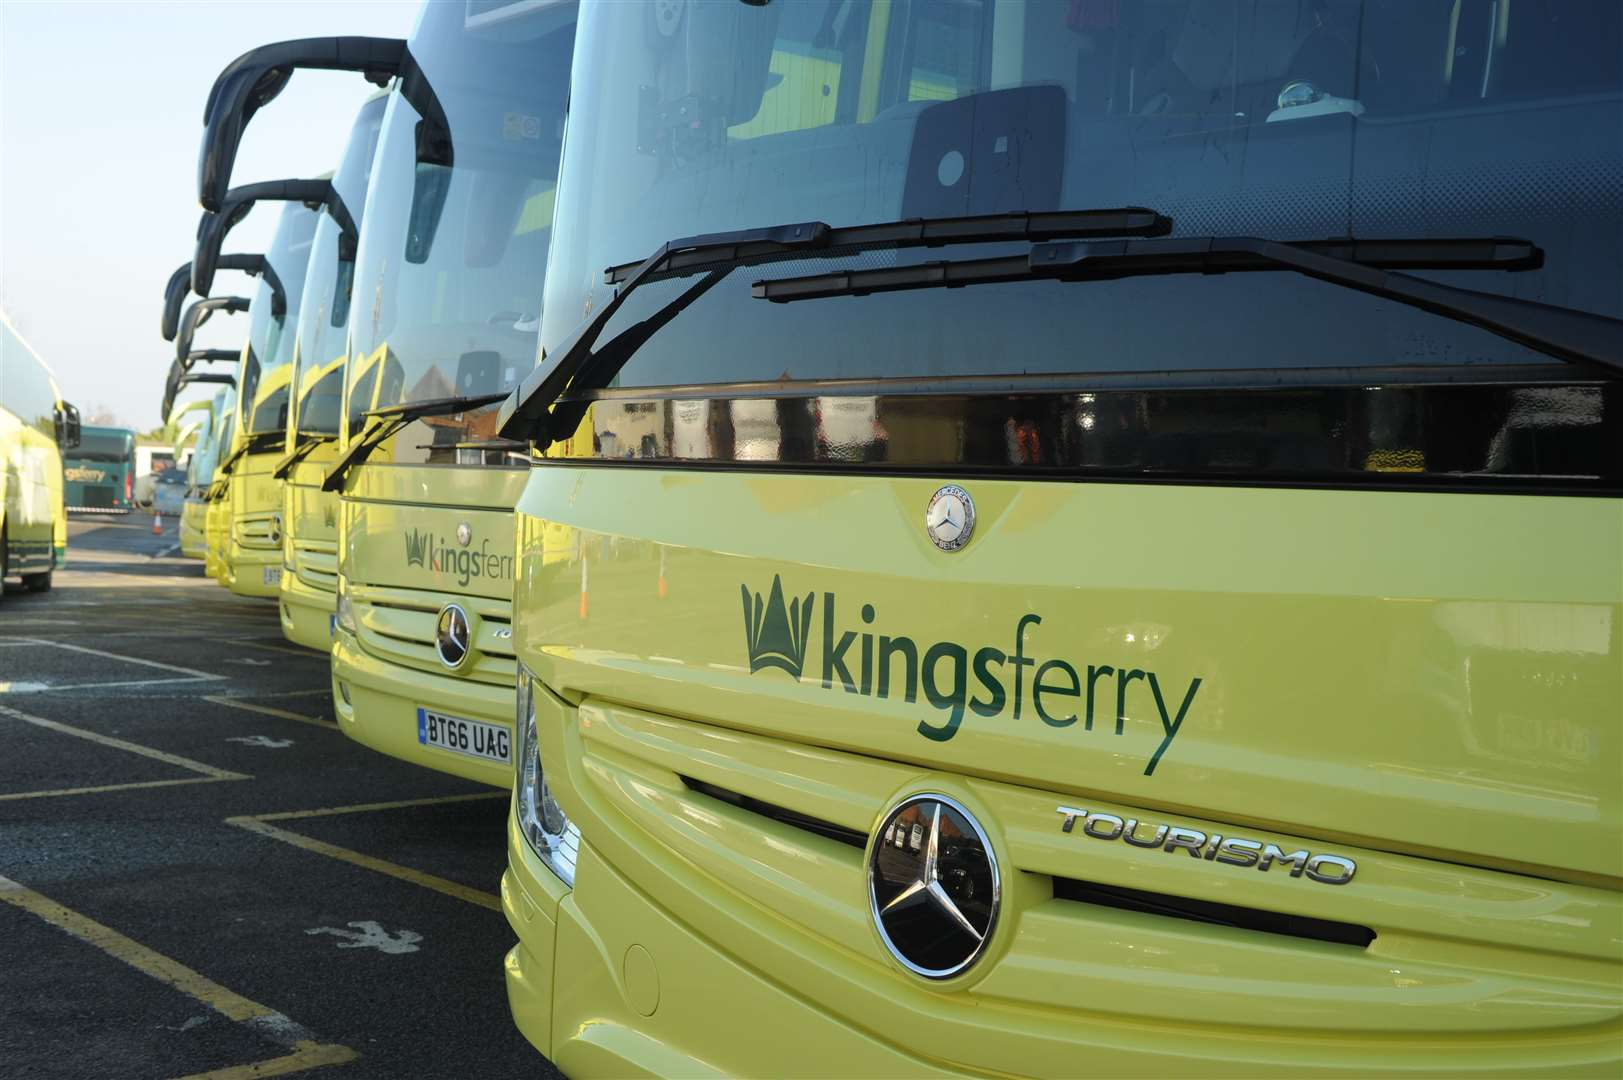 King Ferry in Gillingham has won a clutch of industry awards over the years